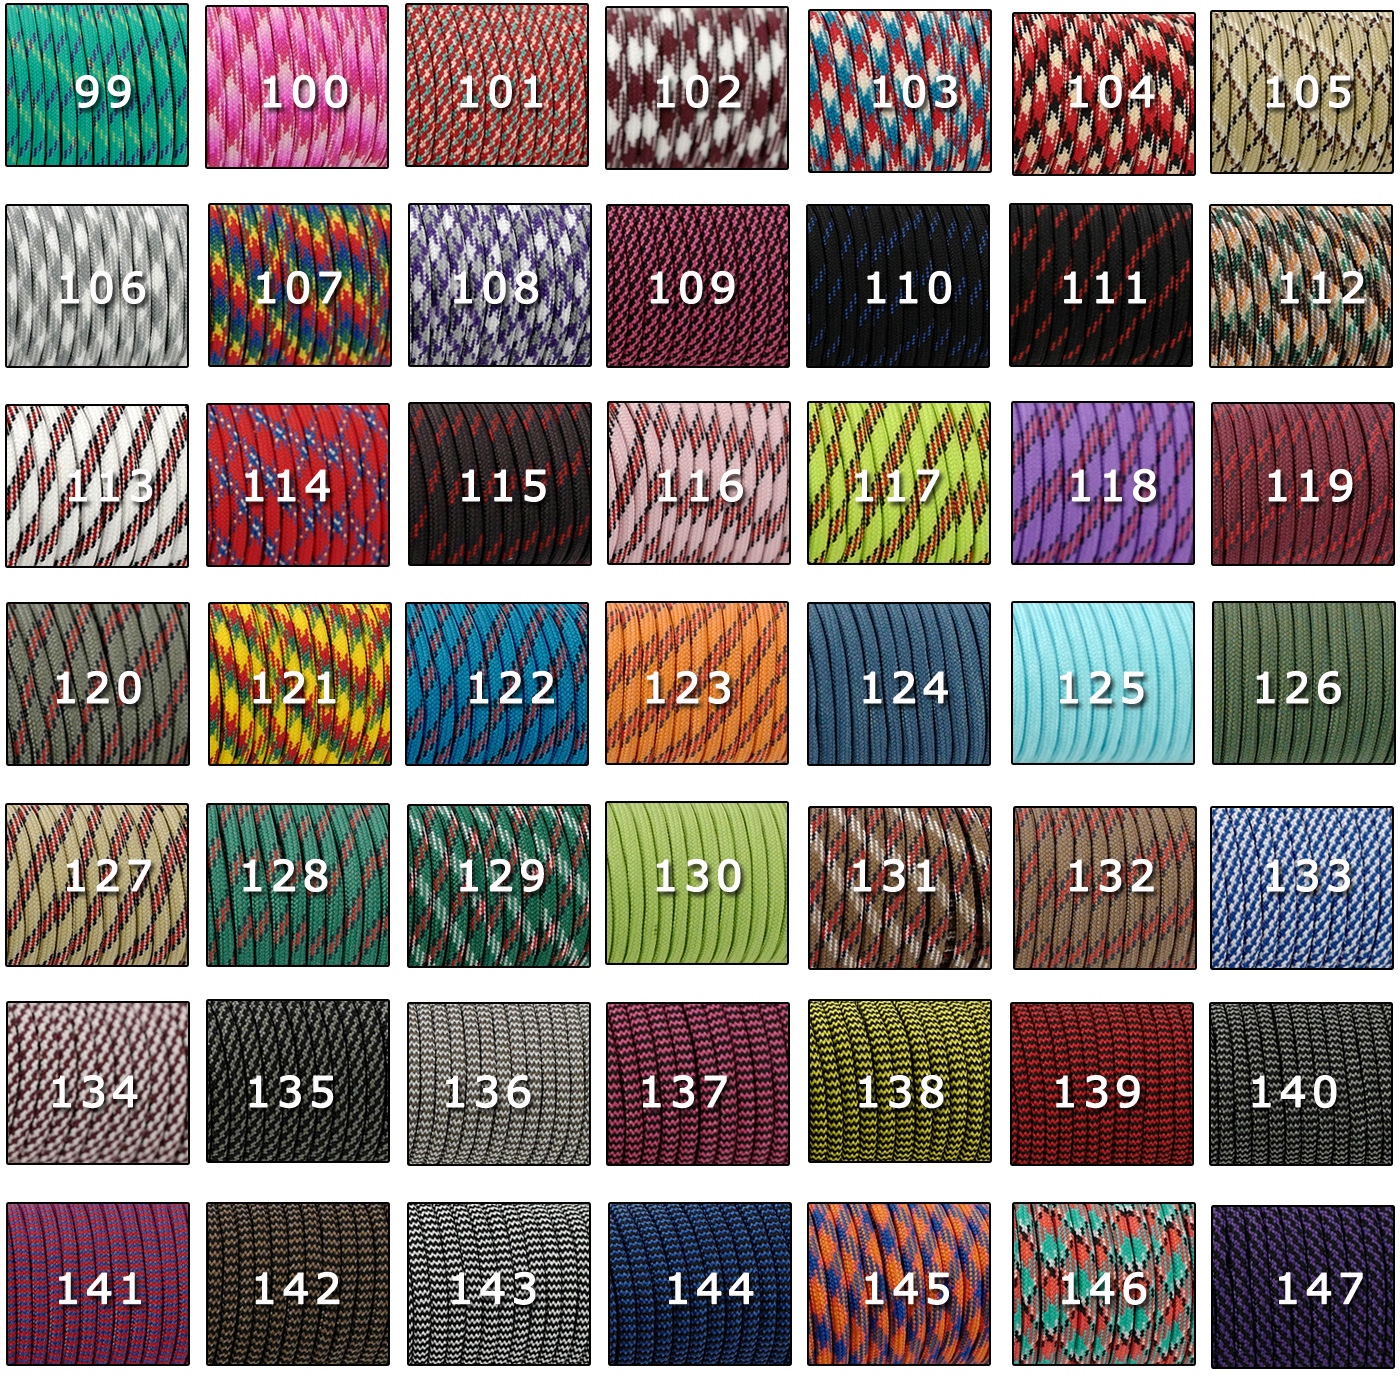 YOUGLE 550 Paracord Parachute Cord Lanyard Tent Rope Guyline Mil Spec Type III 7 Strand 50FT 100FT For Hiking Camping 259 Colors 4